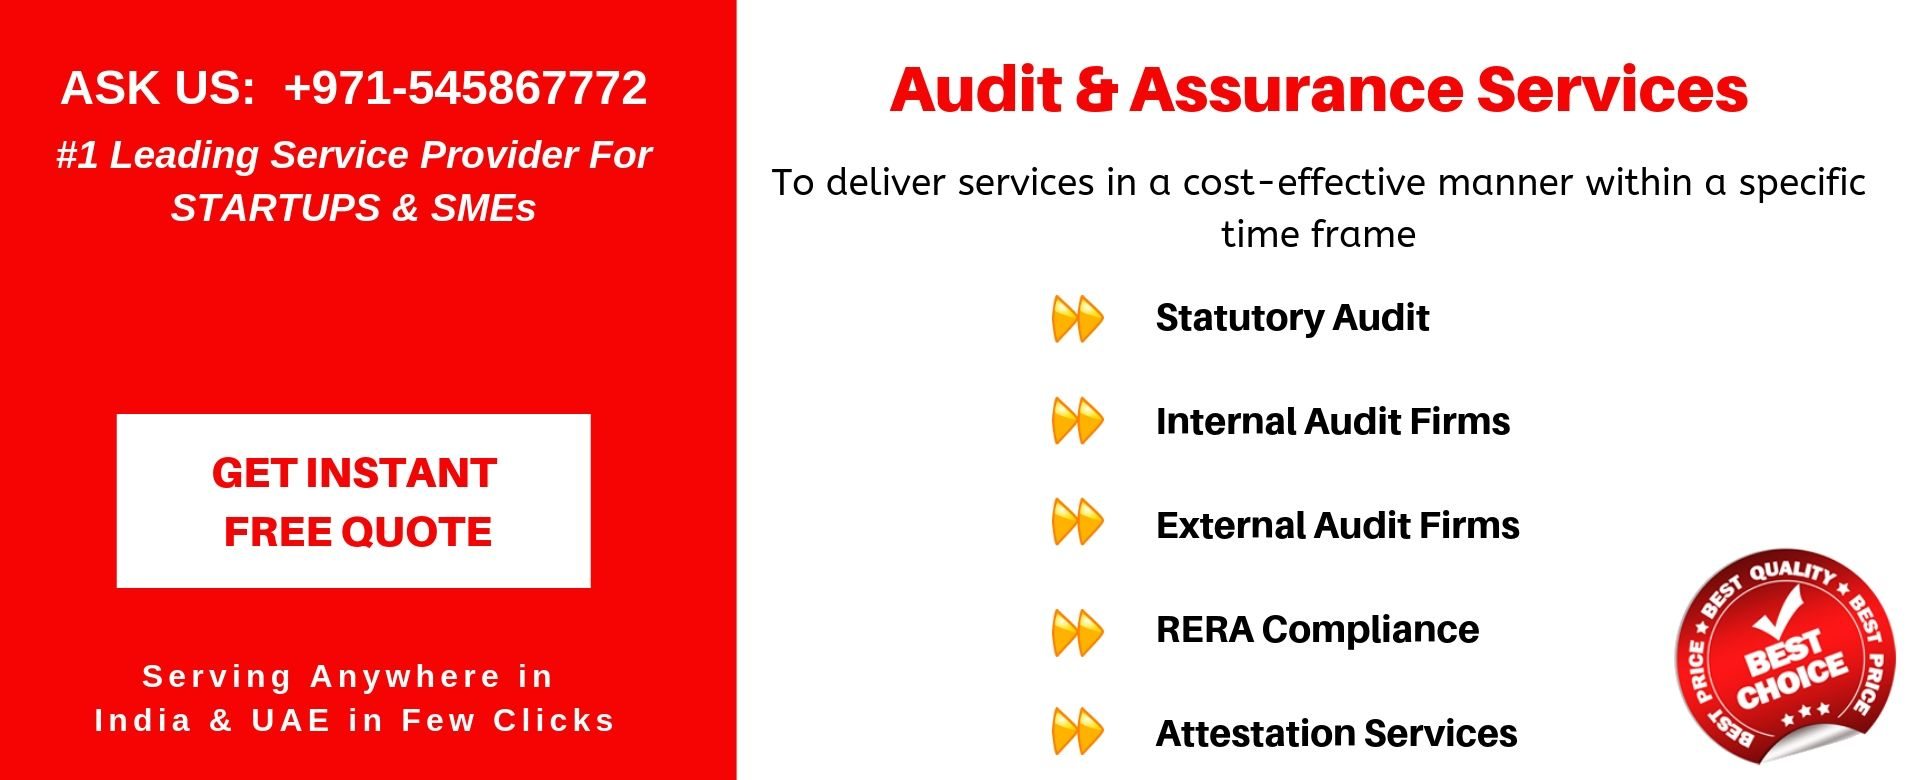 audit assurance services in uae